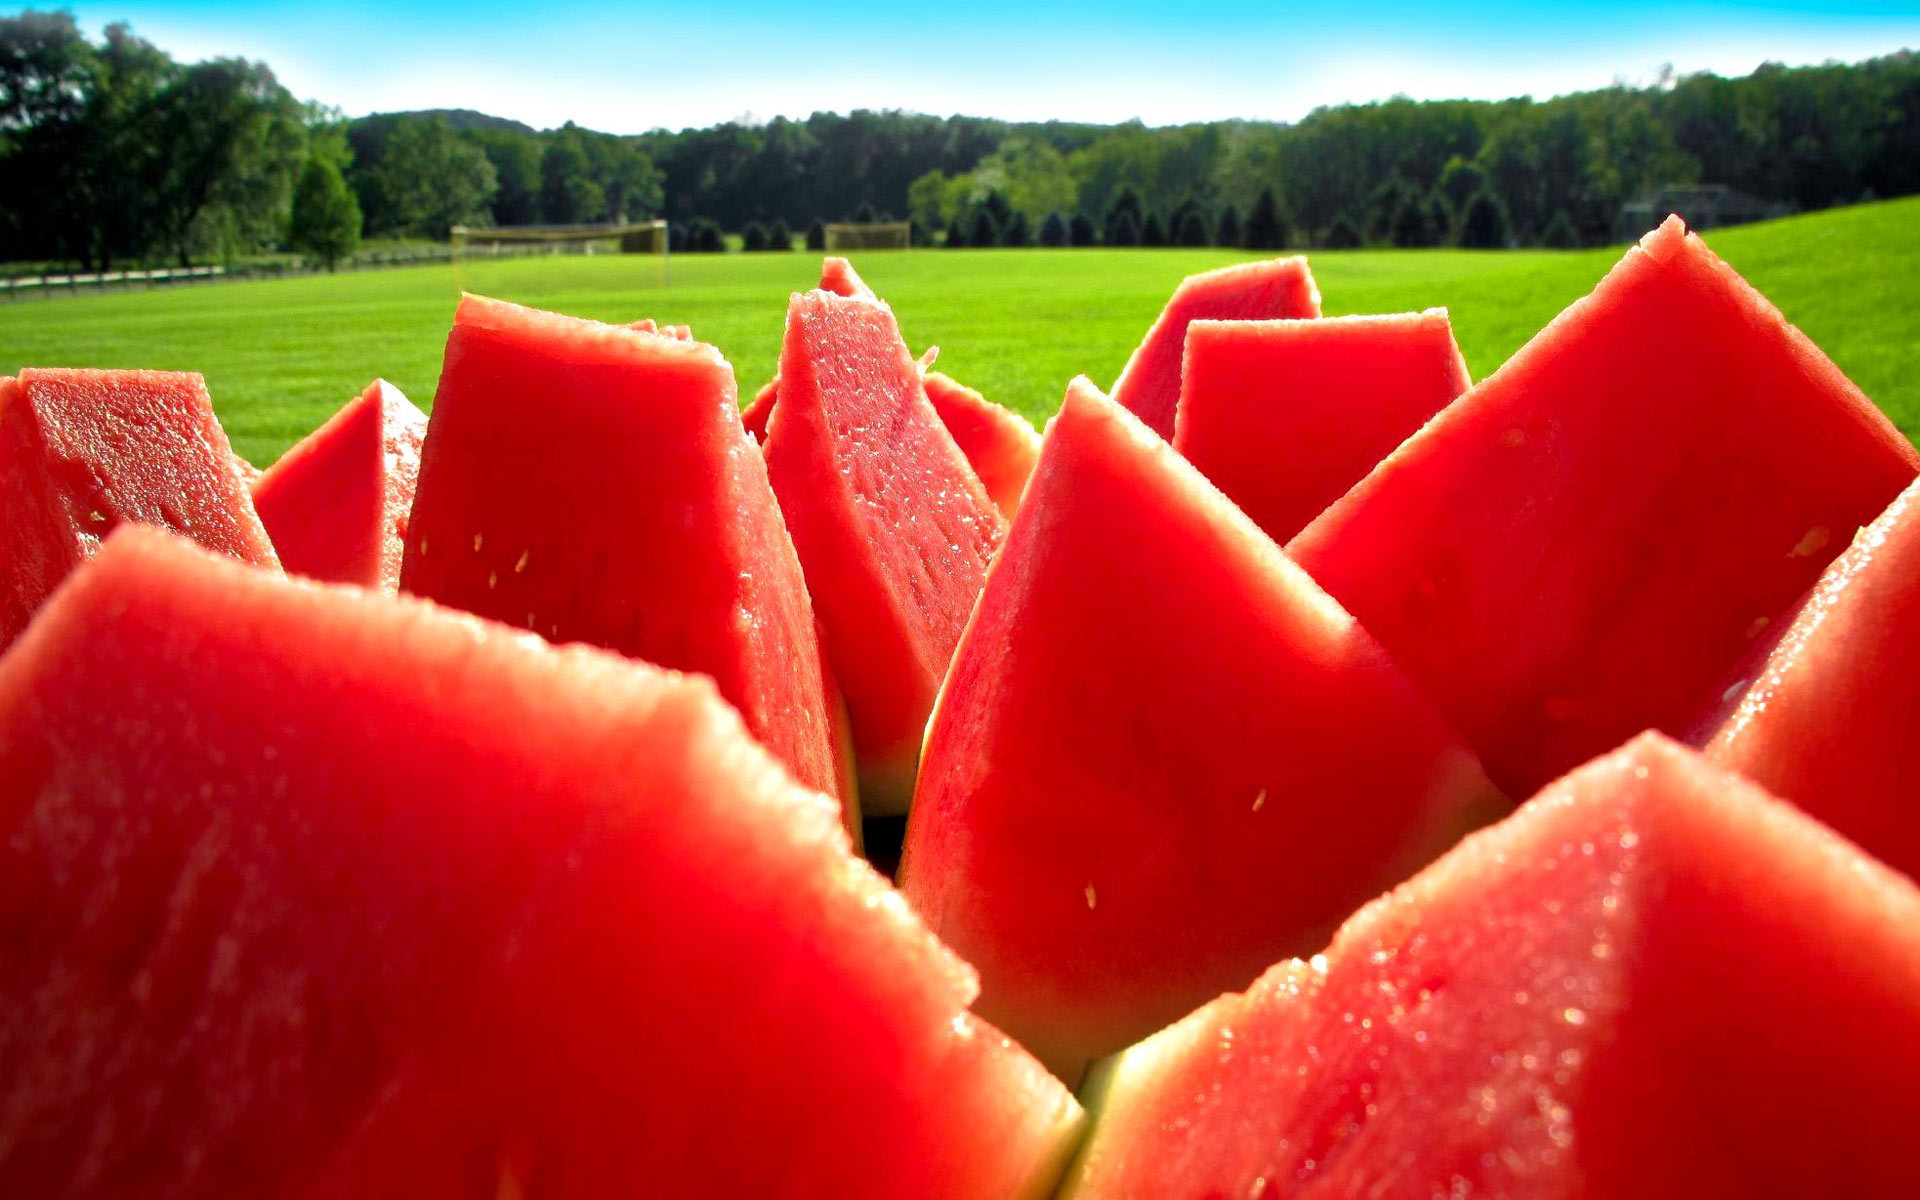 watermelon-fruit-wallpaper-4269-4504-hd-wallpapers